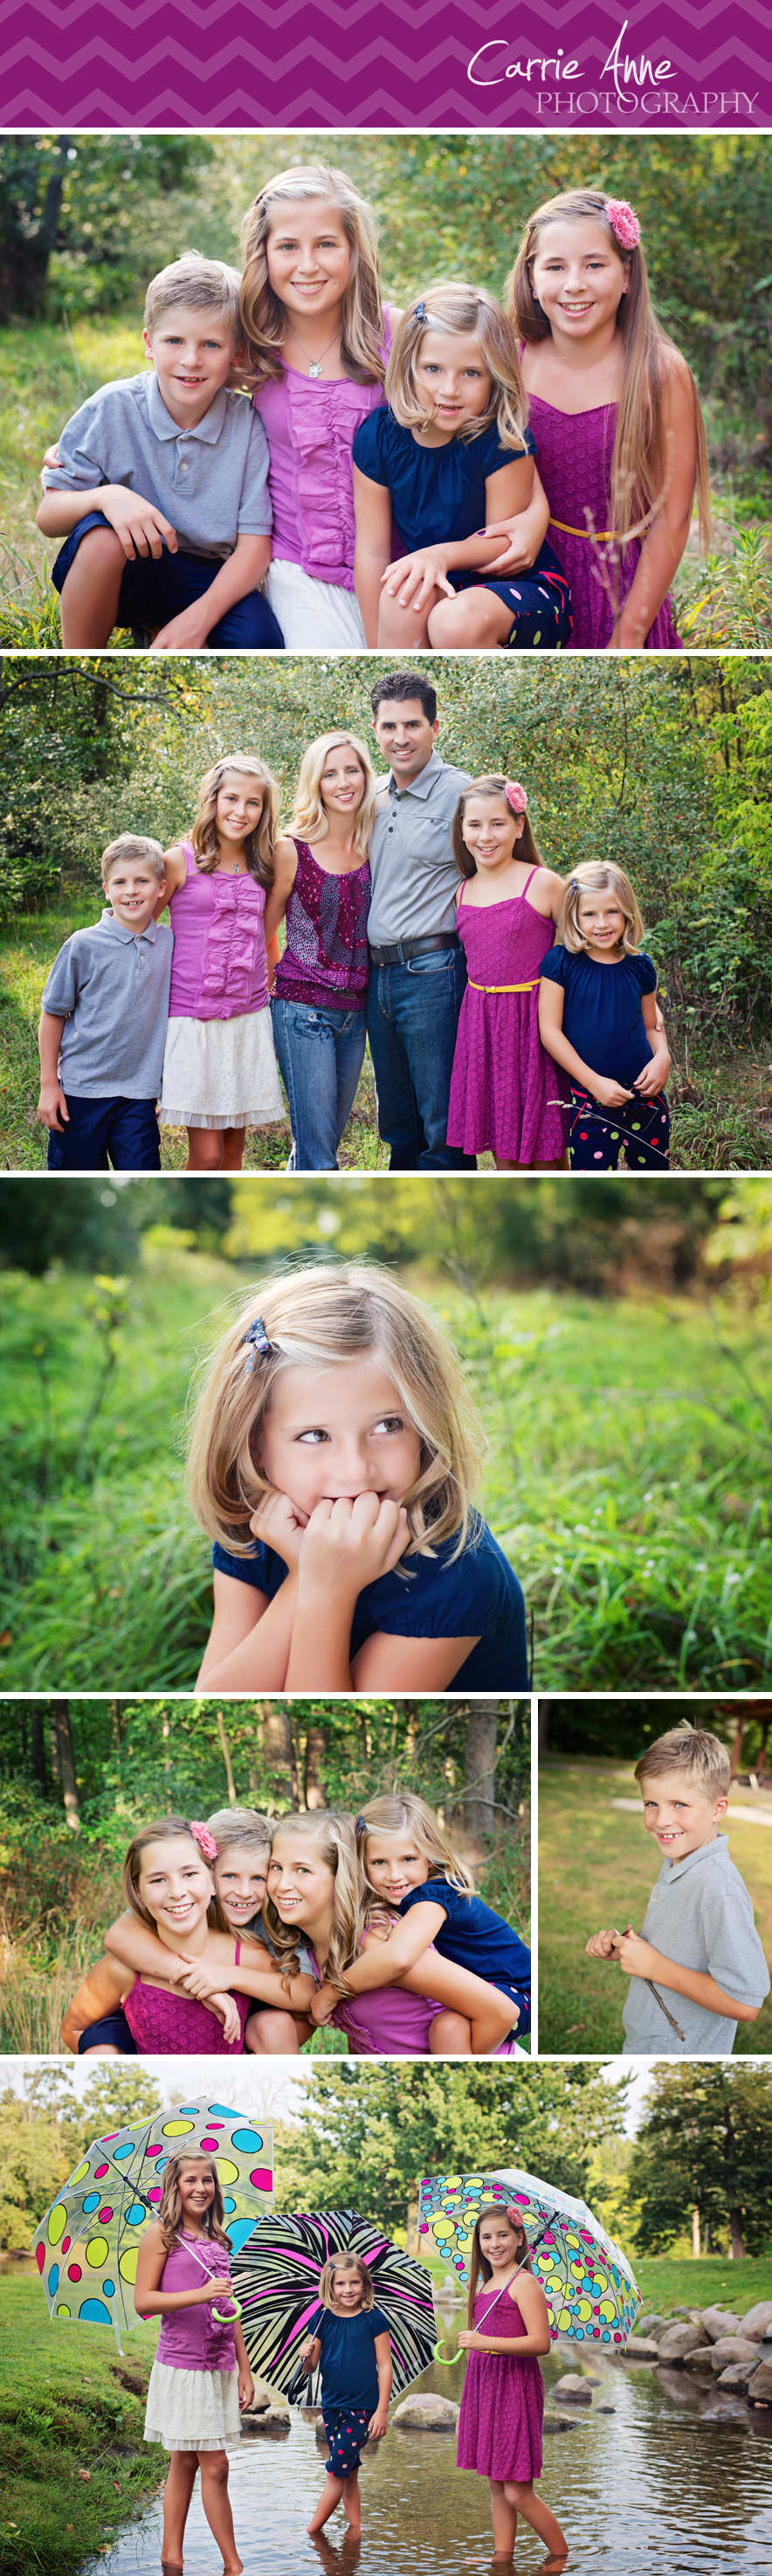 Colorful Family Photography at Fallasburg Park Grand Rapids Family and Child Photographer Carrie Anne Photography